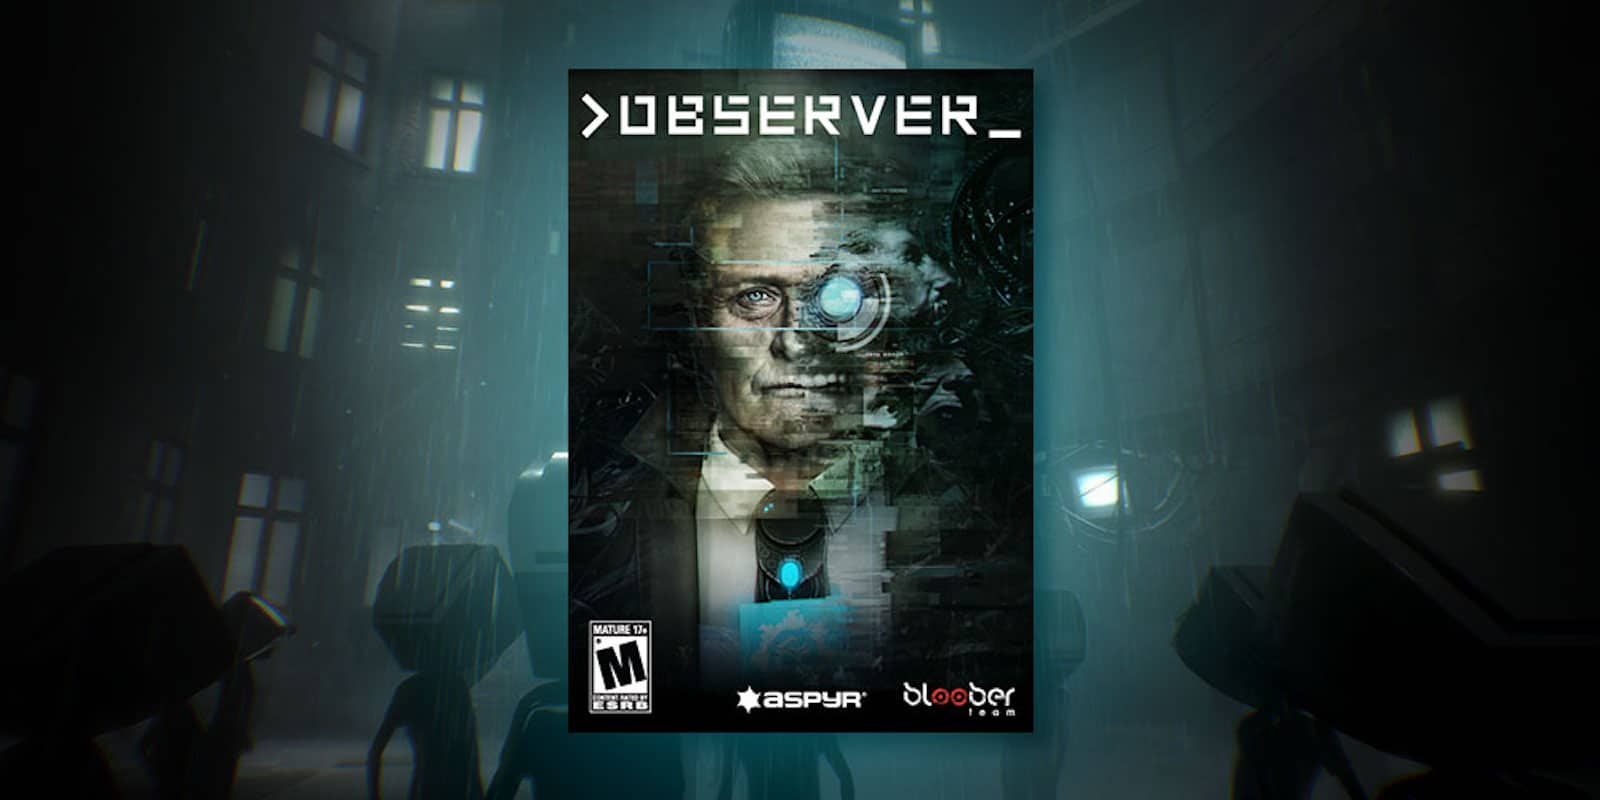 Play the role of a neural detective in this genre-defining cyberpunk horror game.